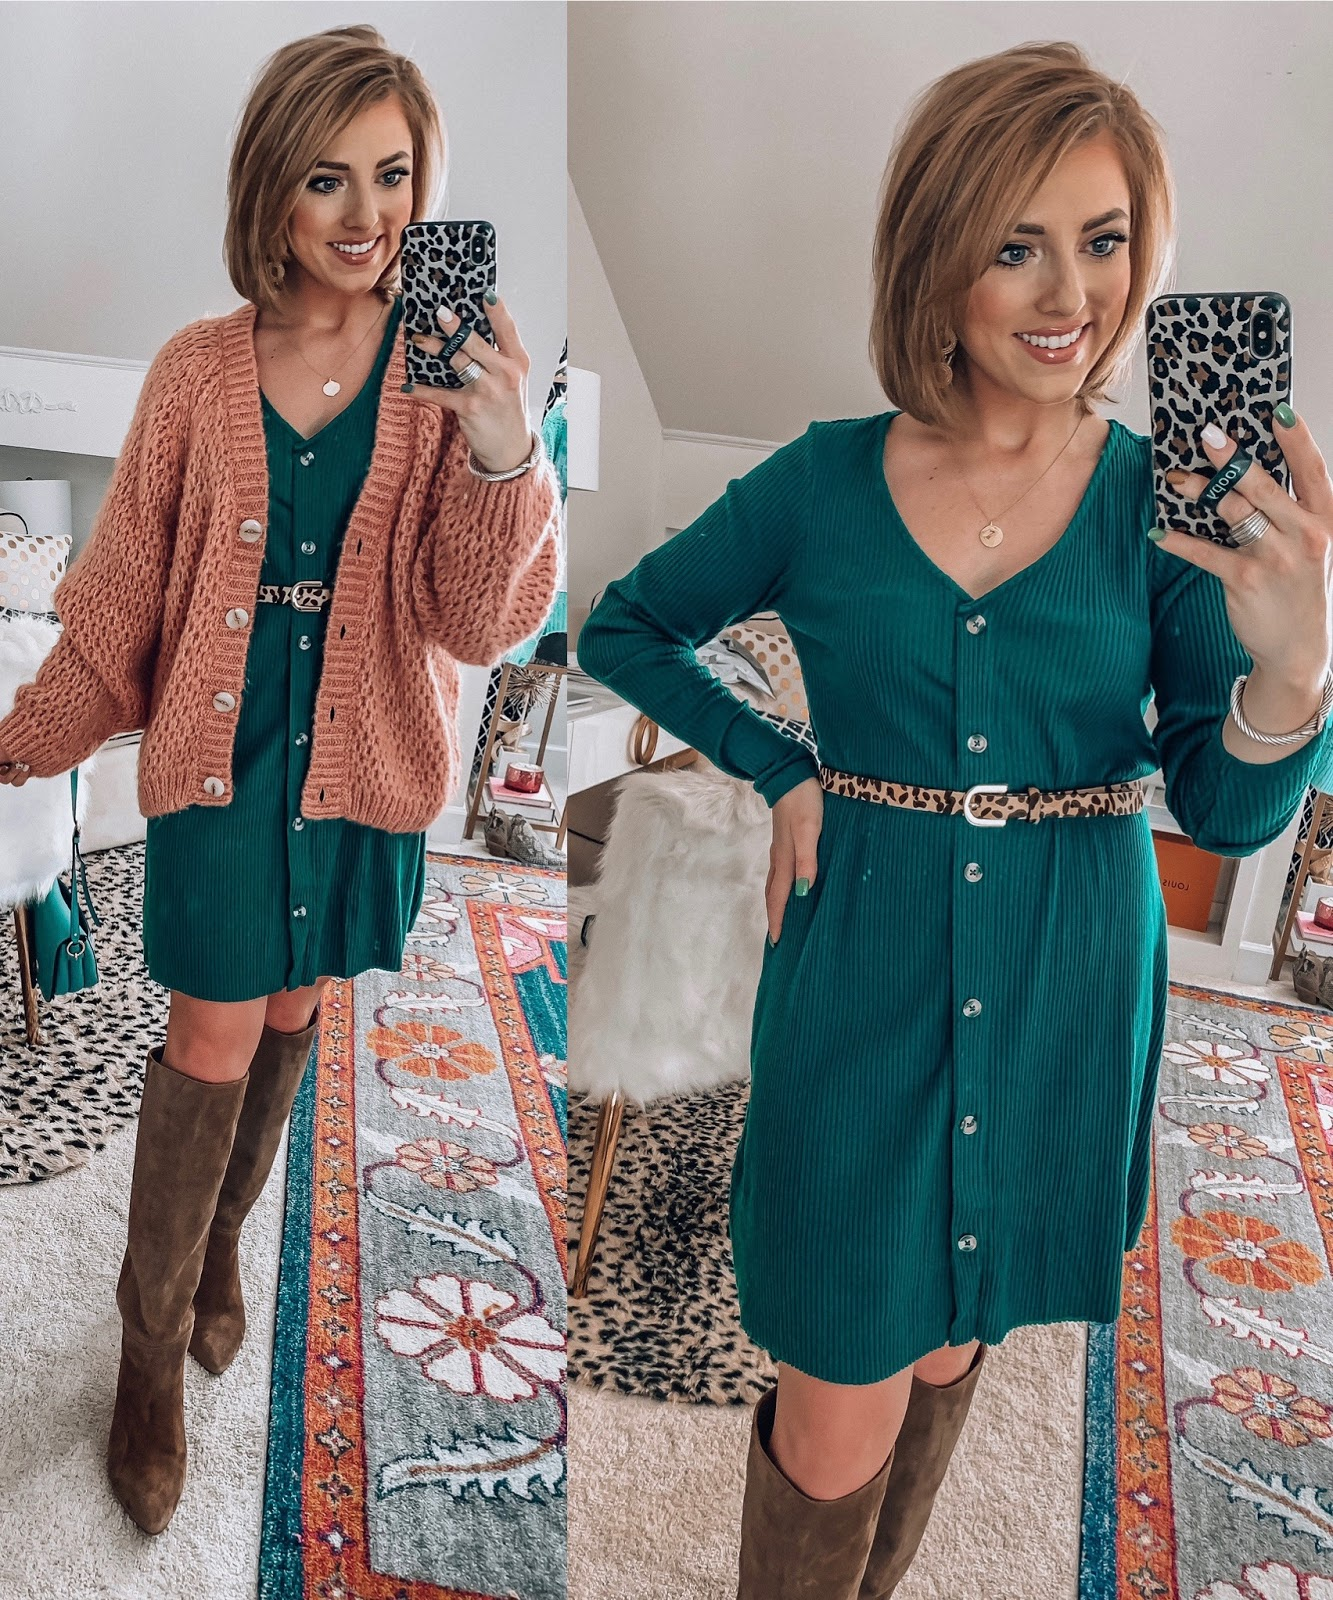 ASOS New Fall Arrivals - $35 Ribbed Button Up Dress in Emerald - Something Delightful Blog #fallstyle #affordablefashion